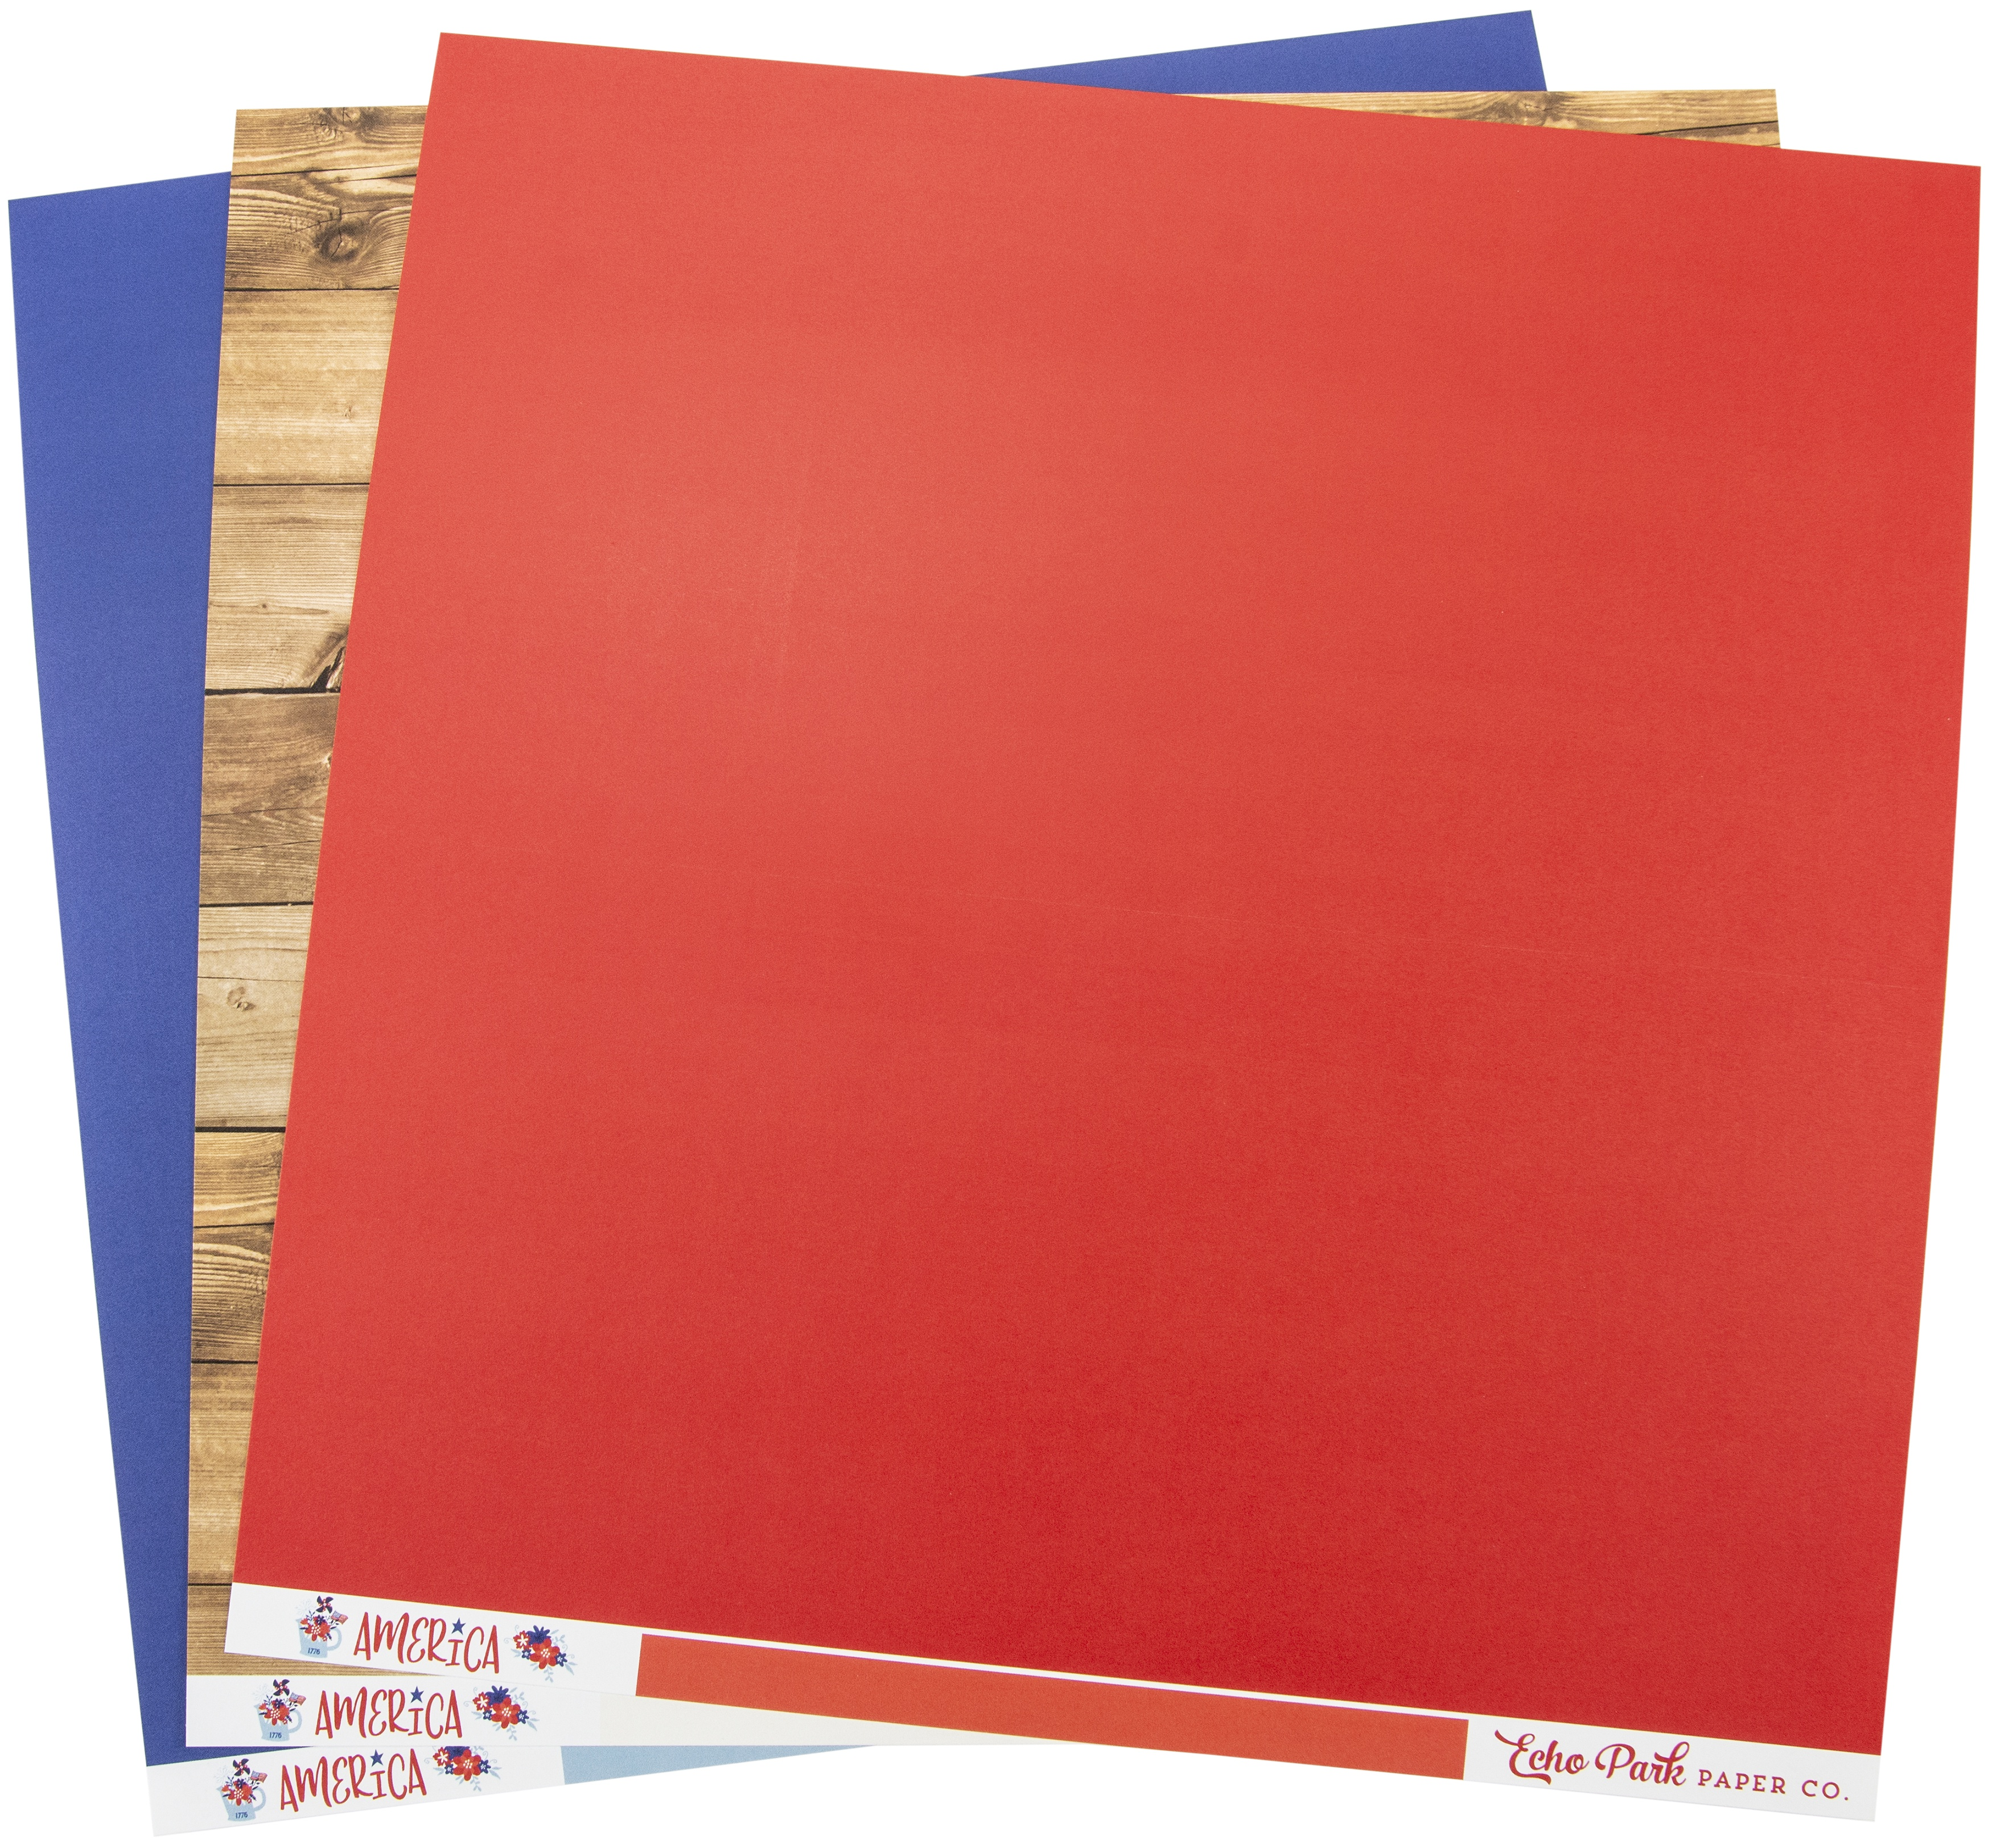 Echo Park Double-Sided Solid Cardstock 12X12 6/Pkg-America, 6 Colors